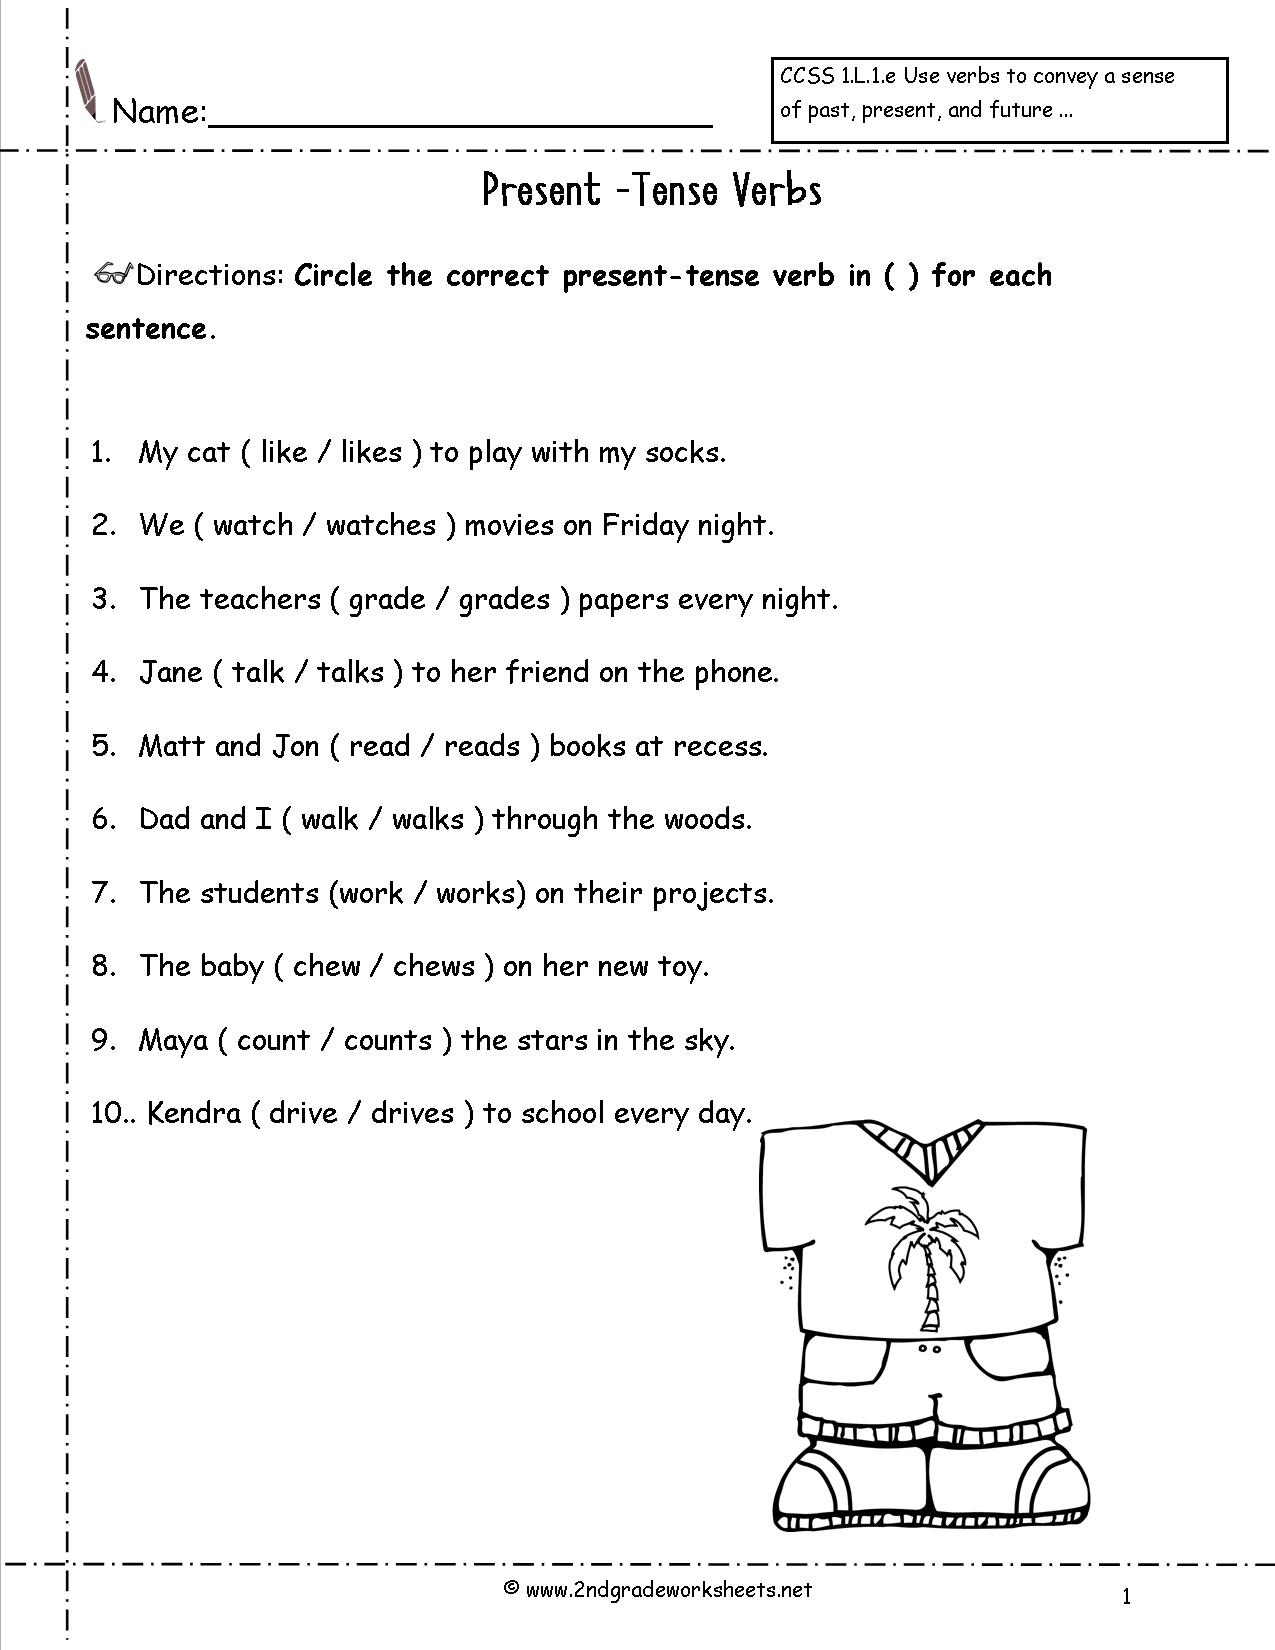 Present Tense Verbs Worksheets 4th Grade